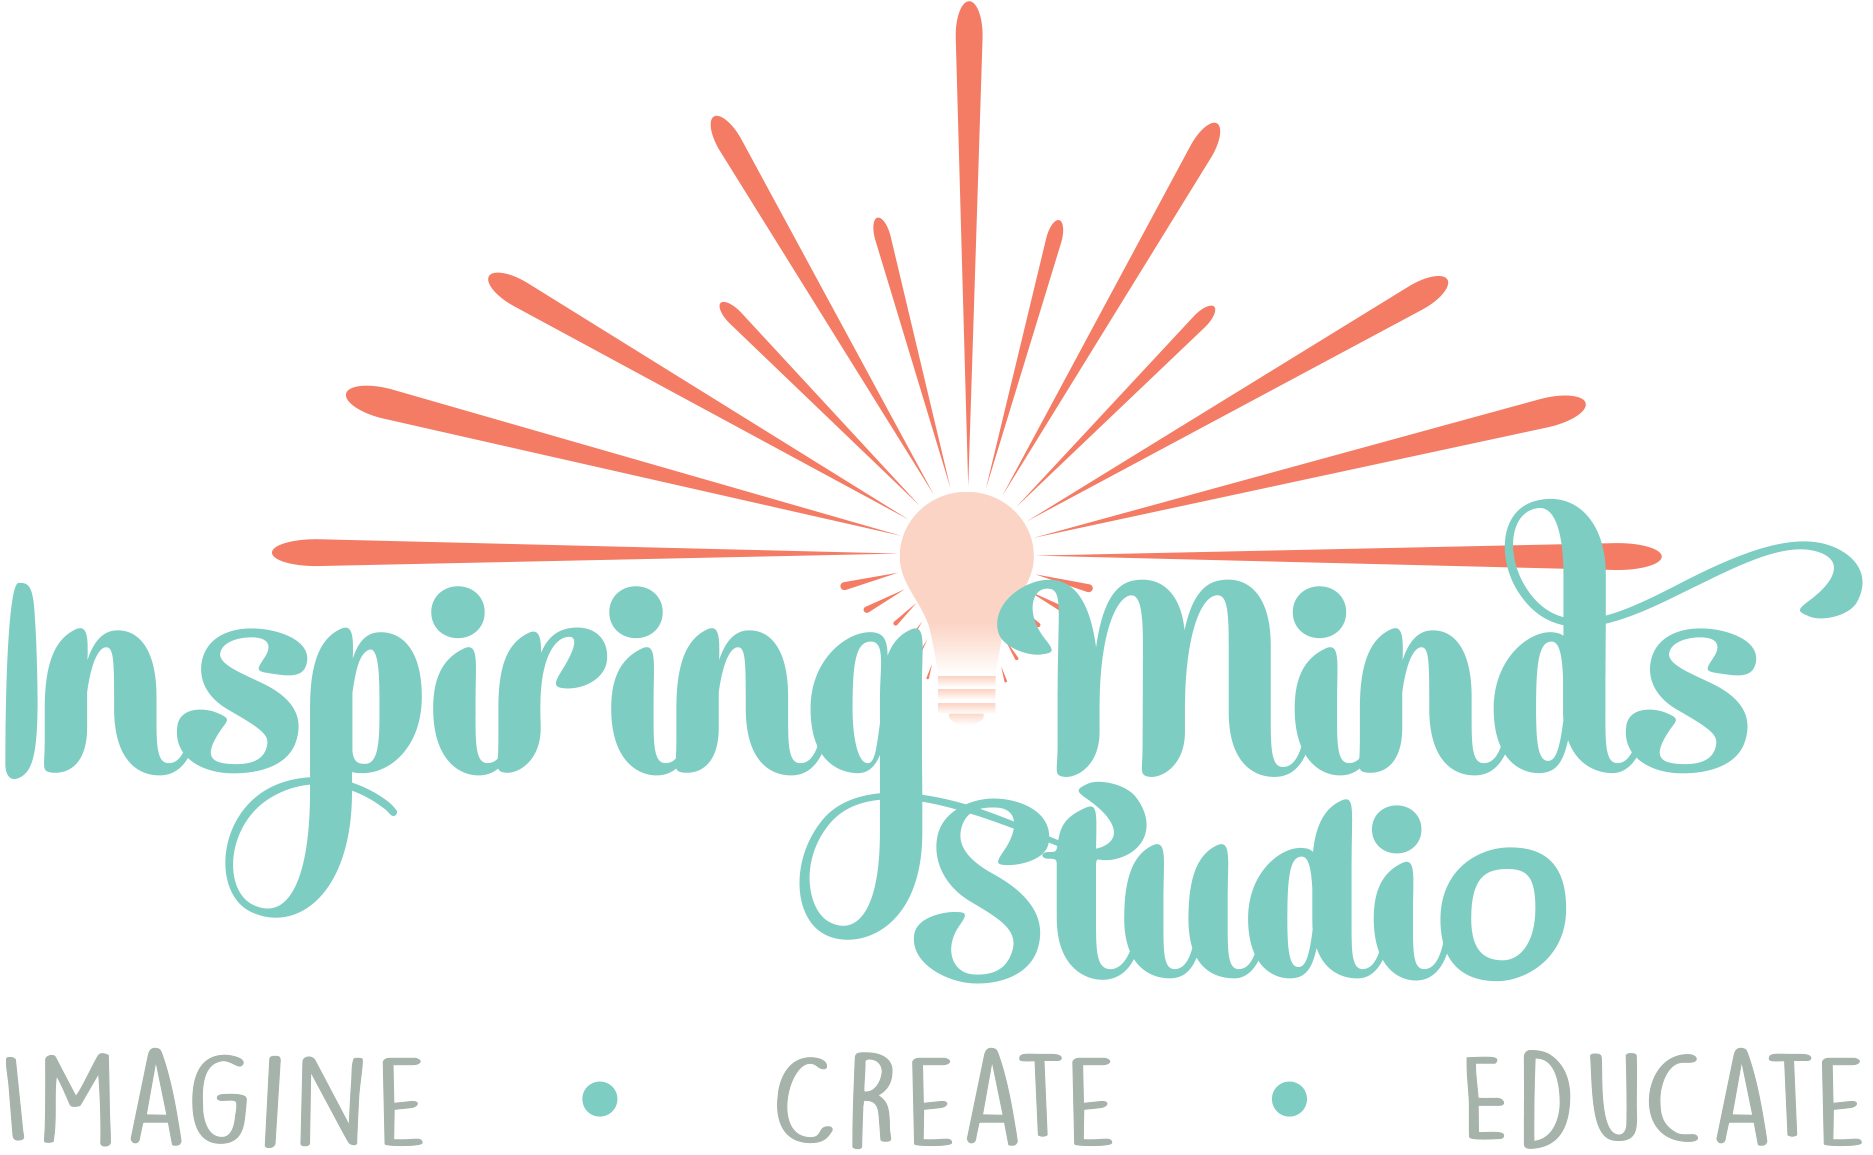 Inspiring Minds Studio